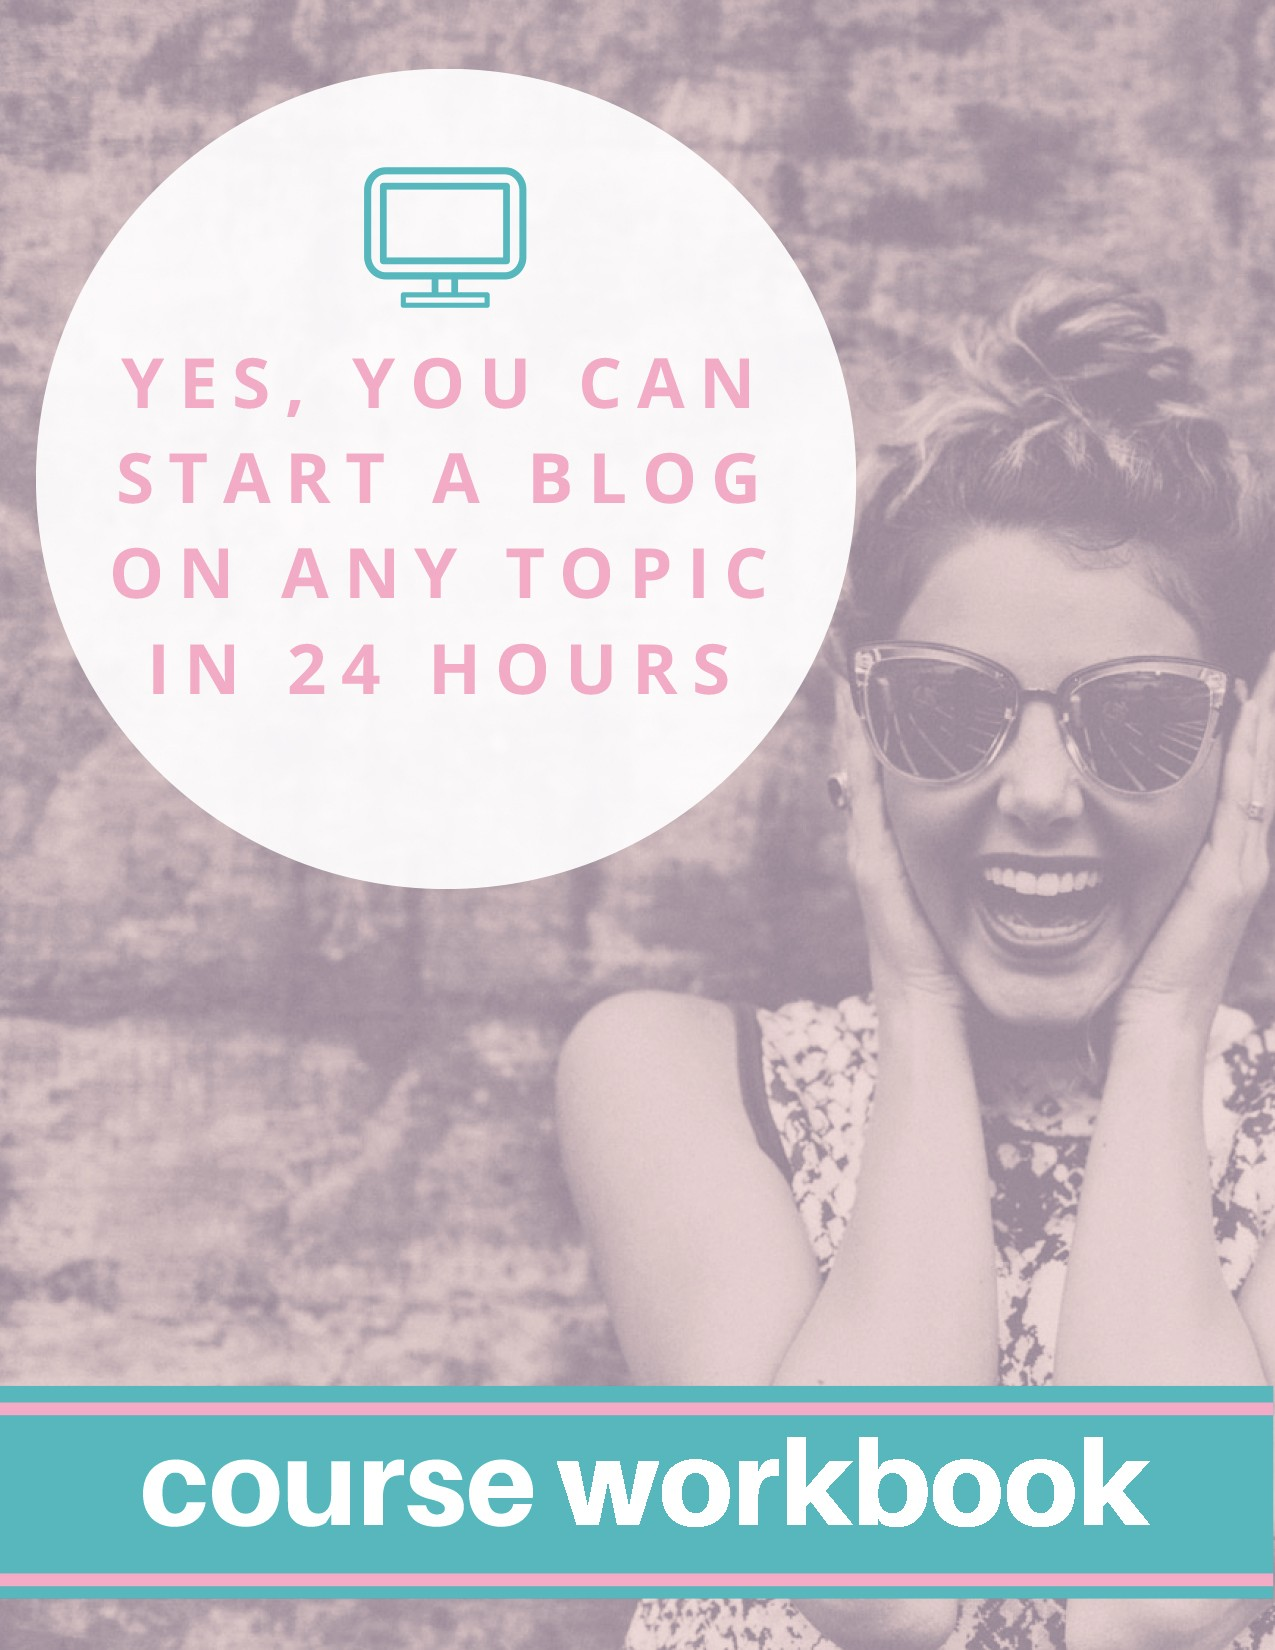 Yes, You Can Start A Blog on Any Topic in 24 Hours Workbook